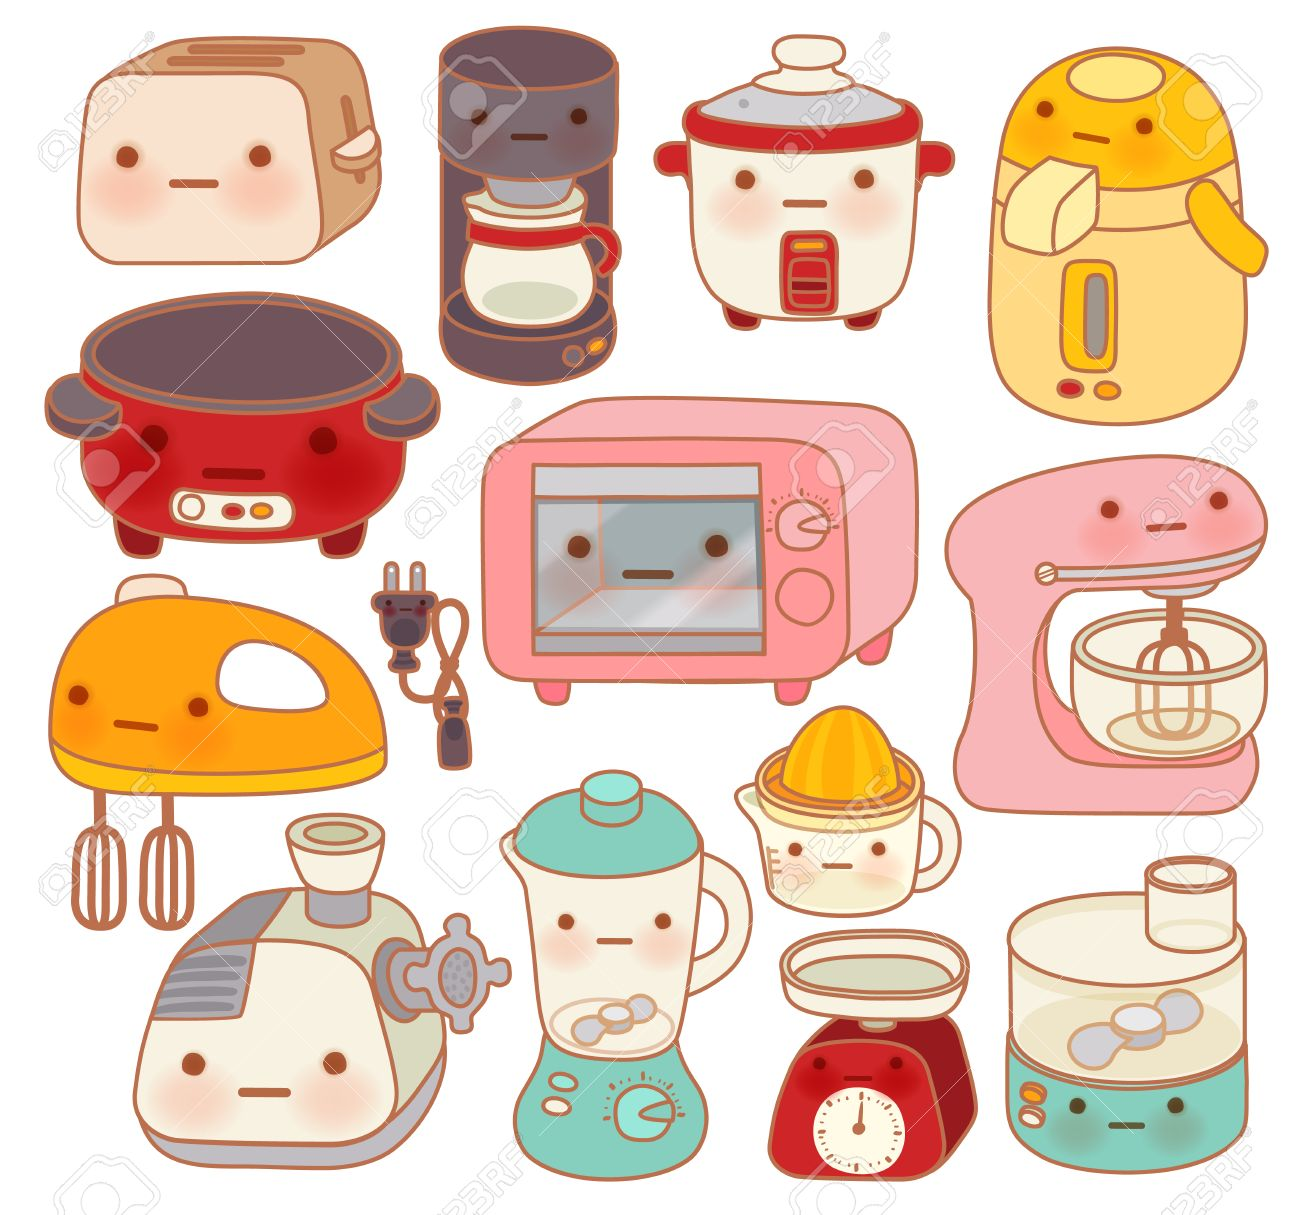 Uncategorized Cute Kitchen Appliances set of adorable kitchen appliances cute kettle lovely oven sweet blender isolated on